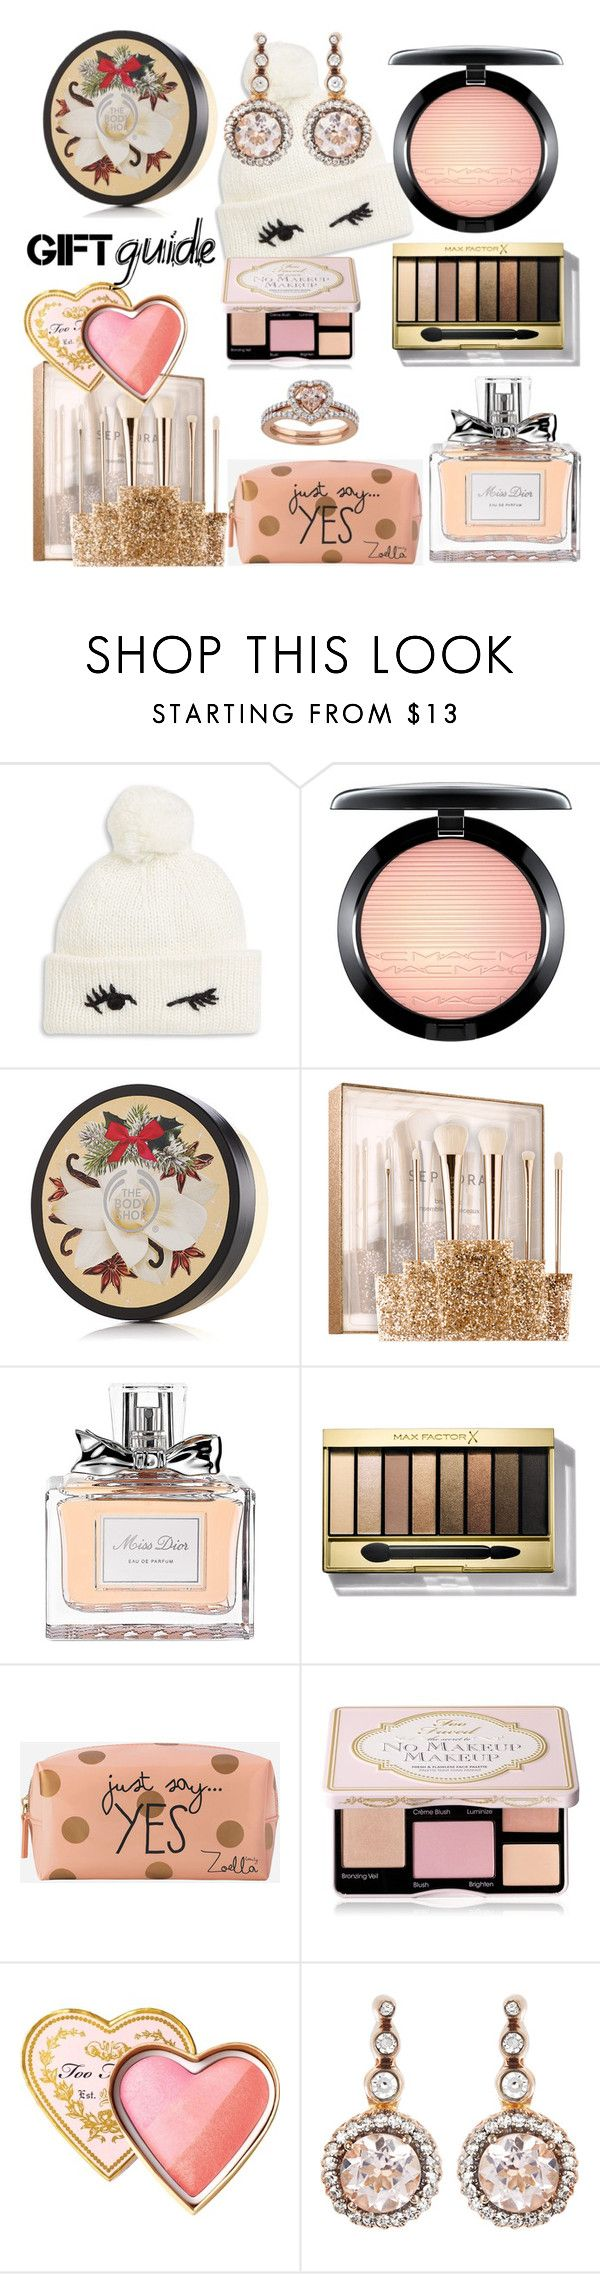 """Untitled #136"" by bellezza95 ❤ liked on Polyvore featuring Kate Spade, MAC Cosmetics, The Body Shop, Sephora Collection, Christian Dior, Max Factor, Zoella Beauty, Too Faced Cosmetics and Selim Mouzannar"